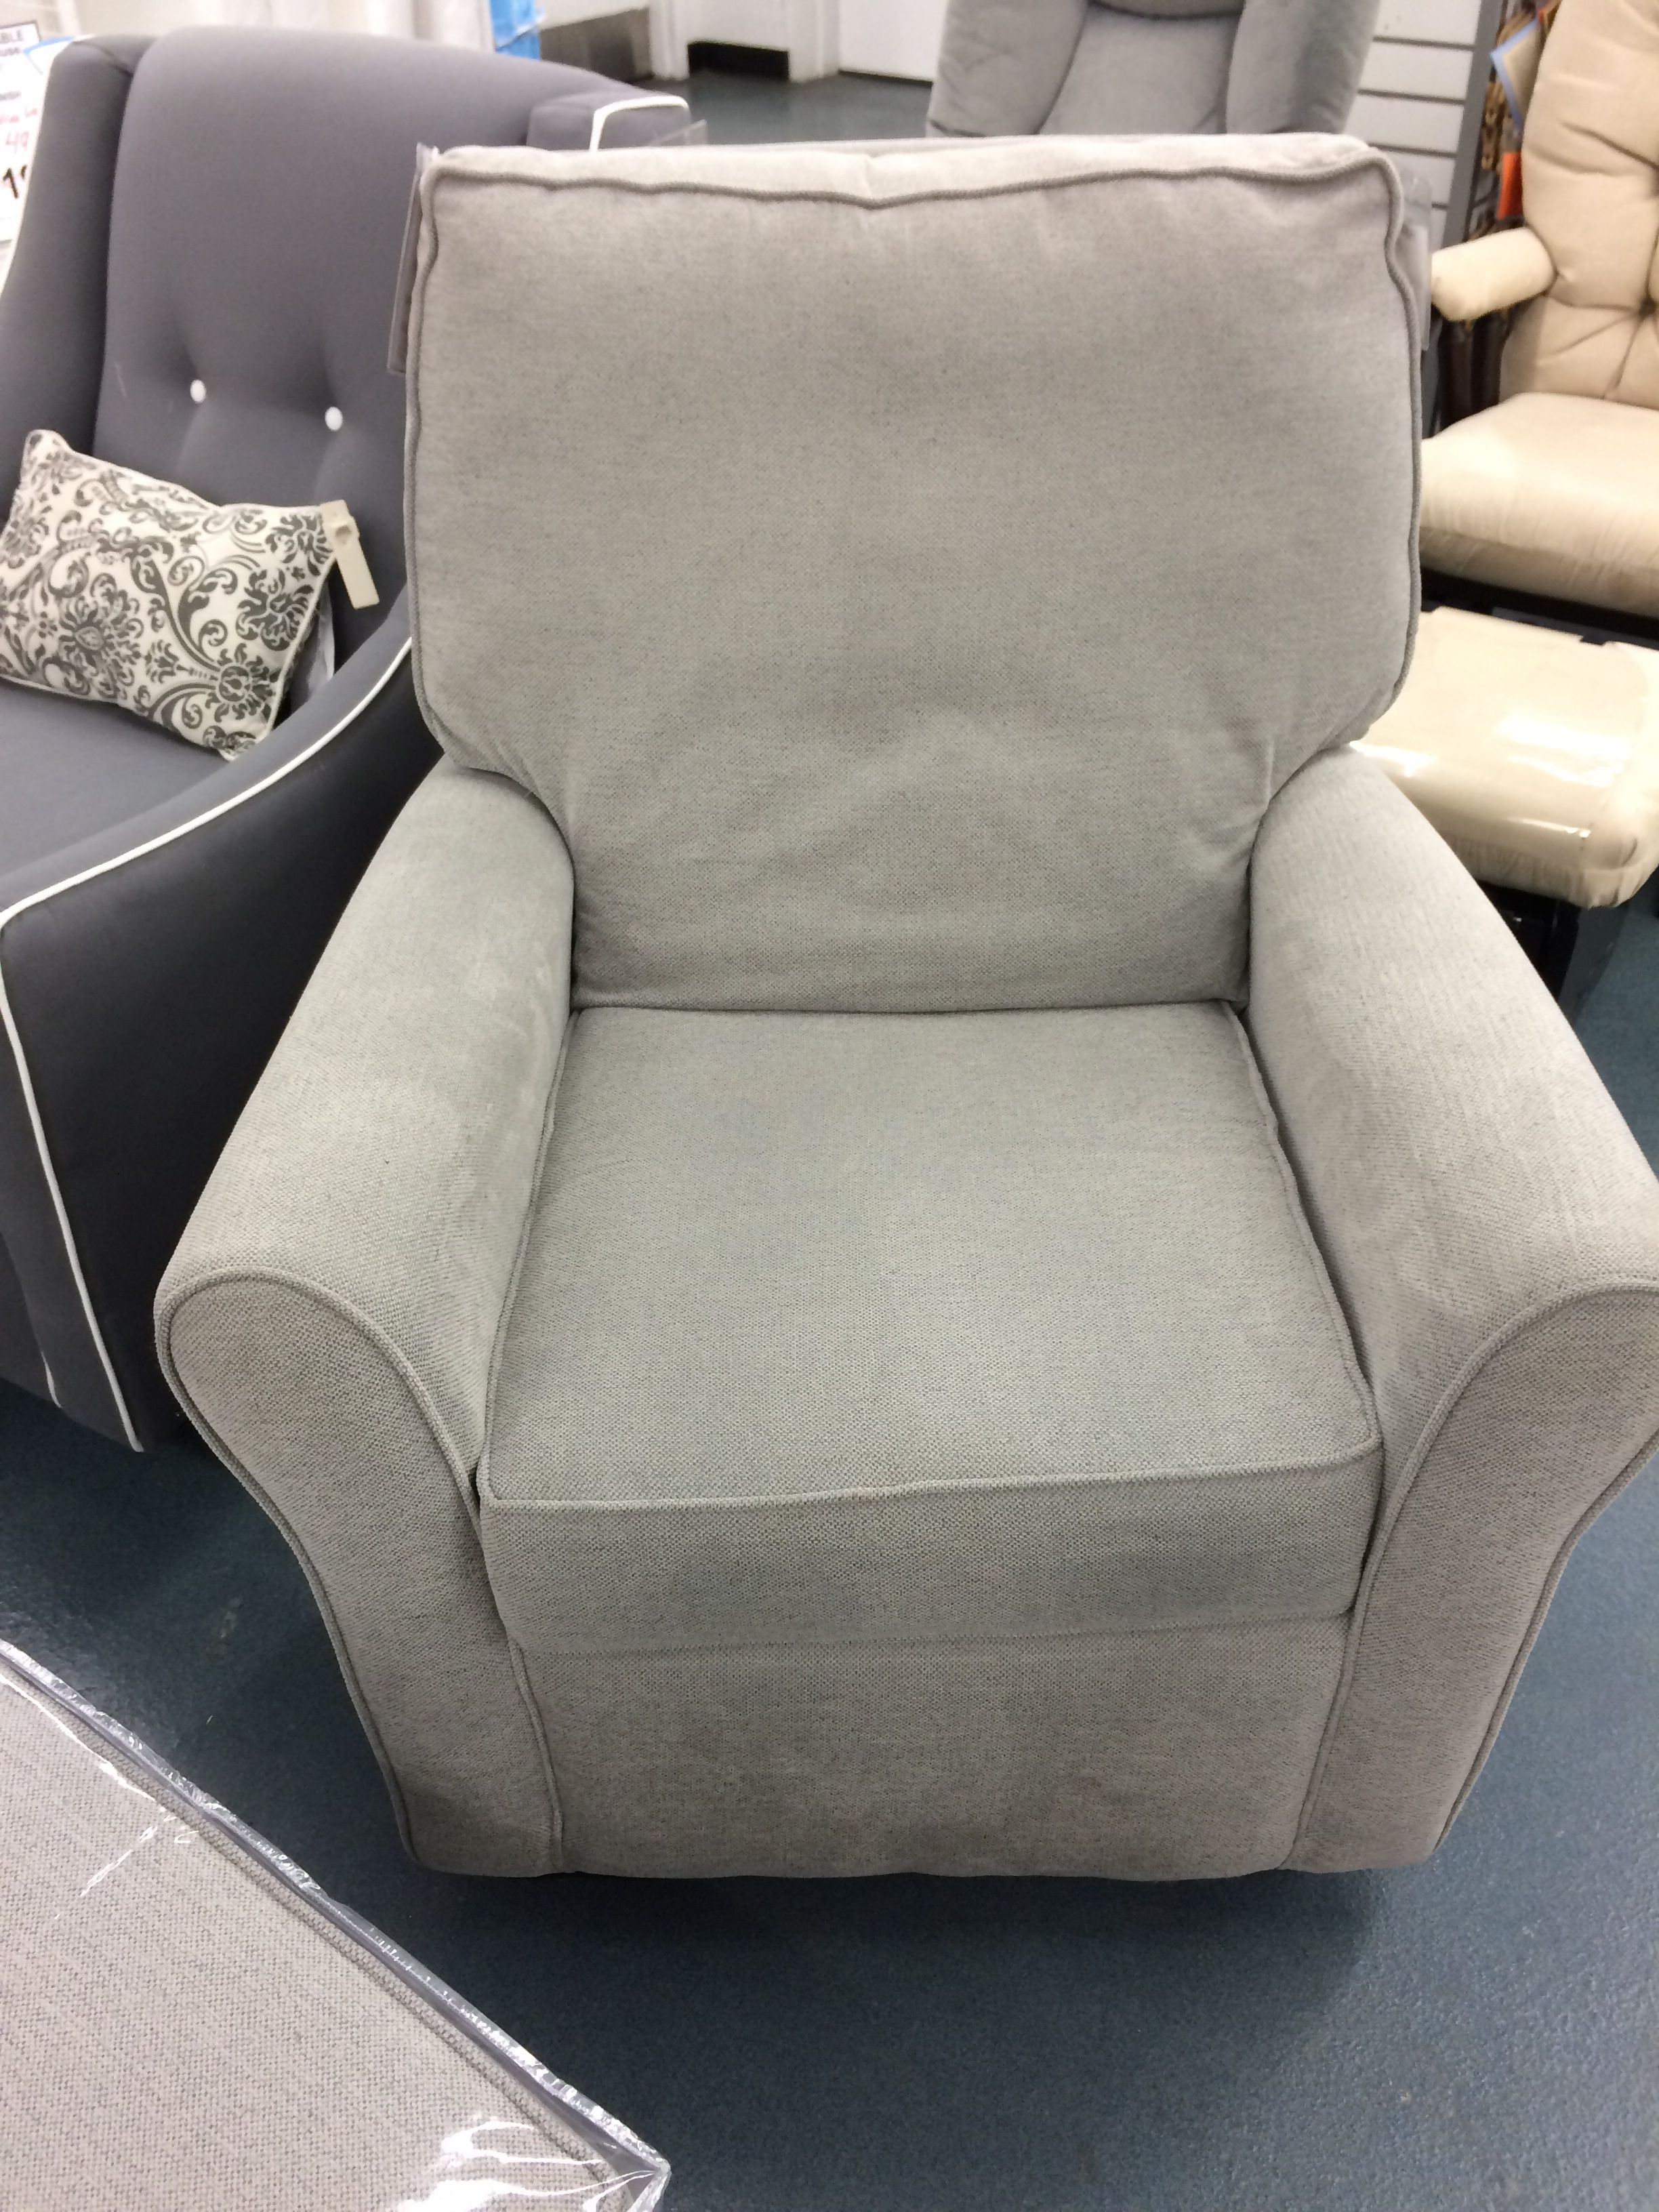 little castle serra glider at nyc buybuybaby